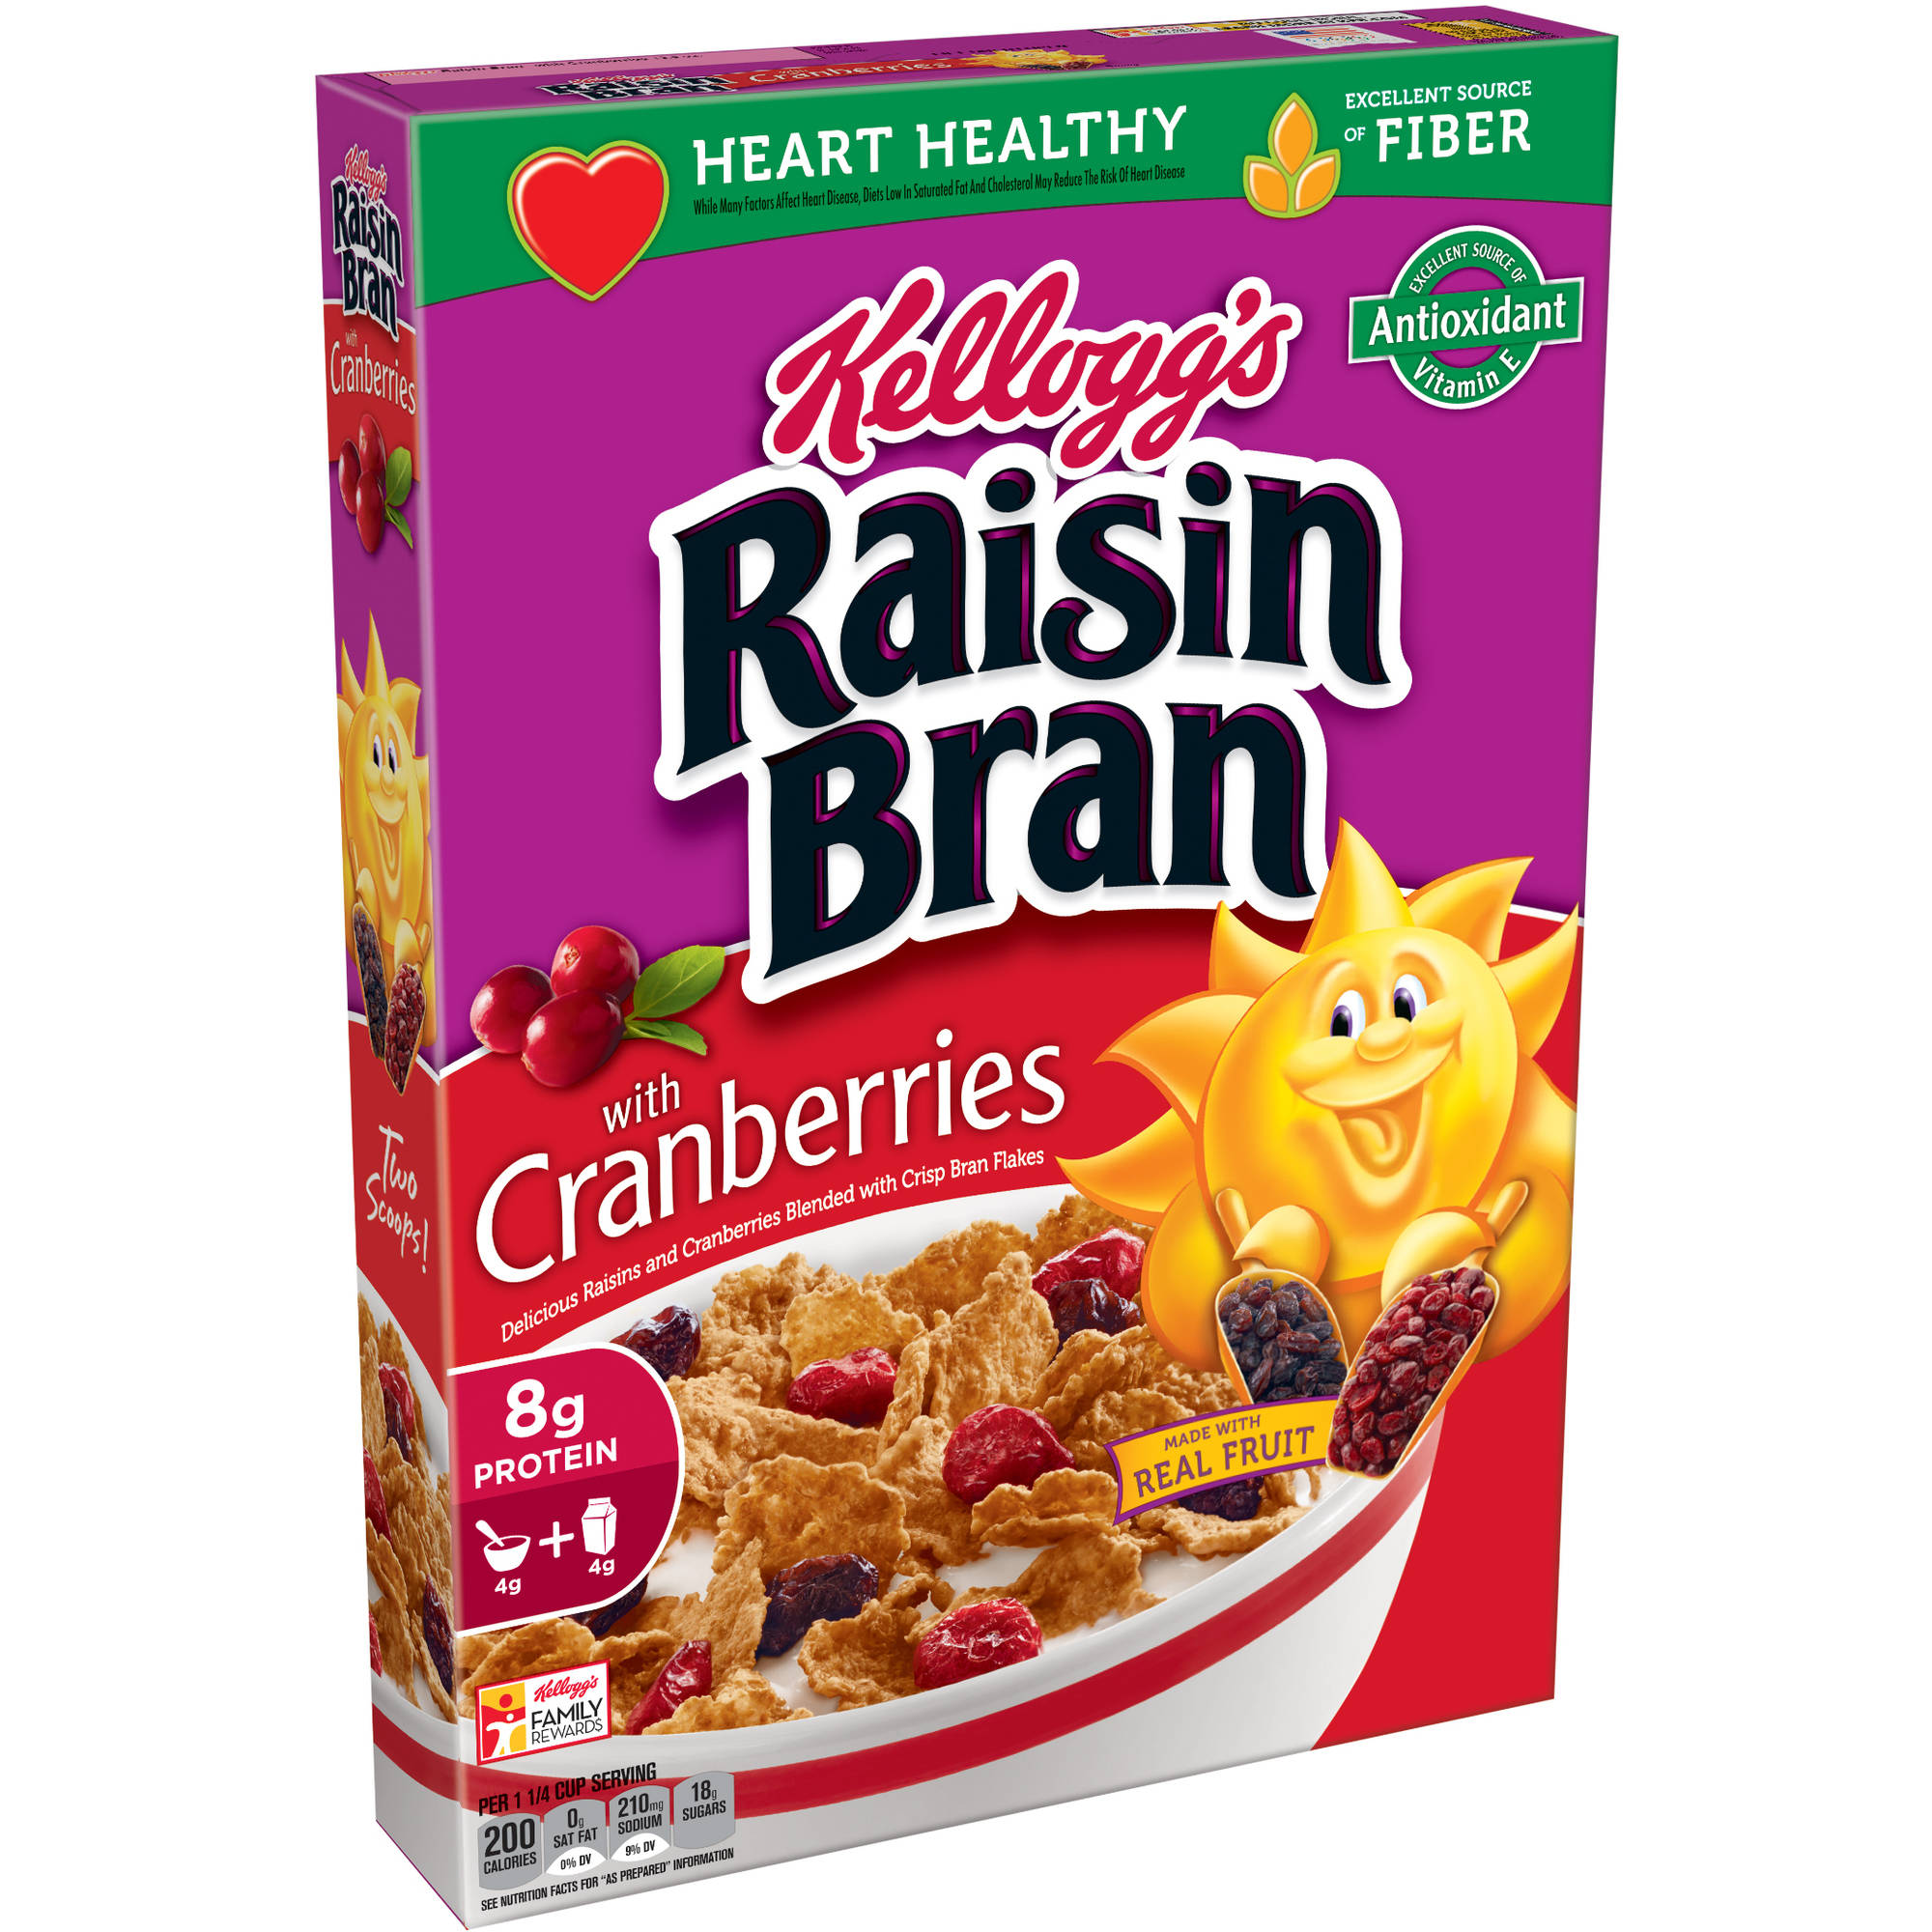 Kellogg's Raisin Bran Cereal with Cranberries, 13.5 oz